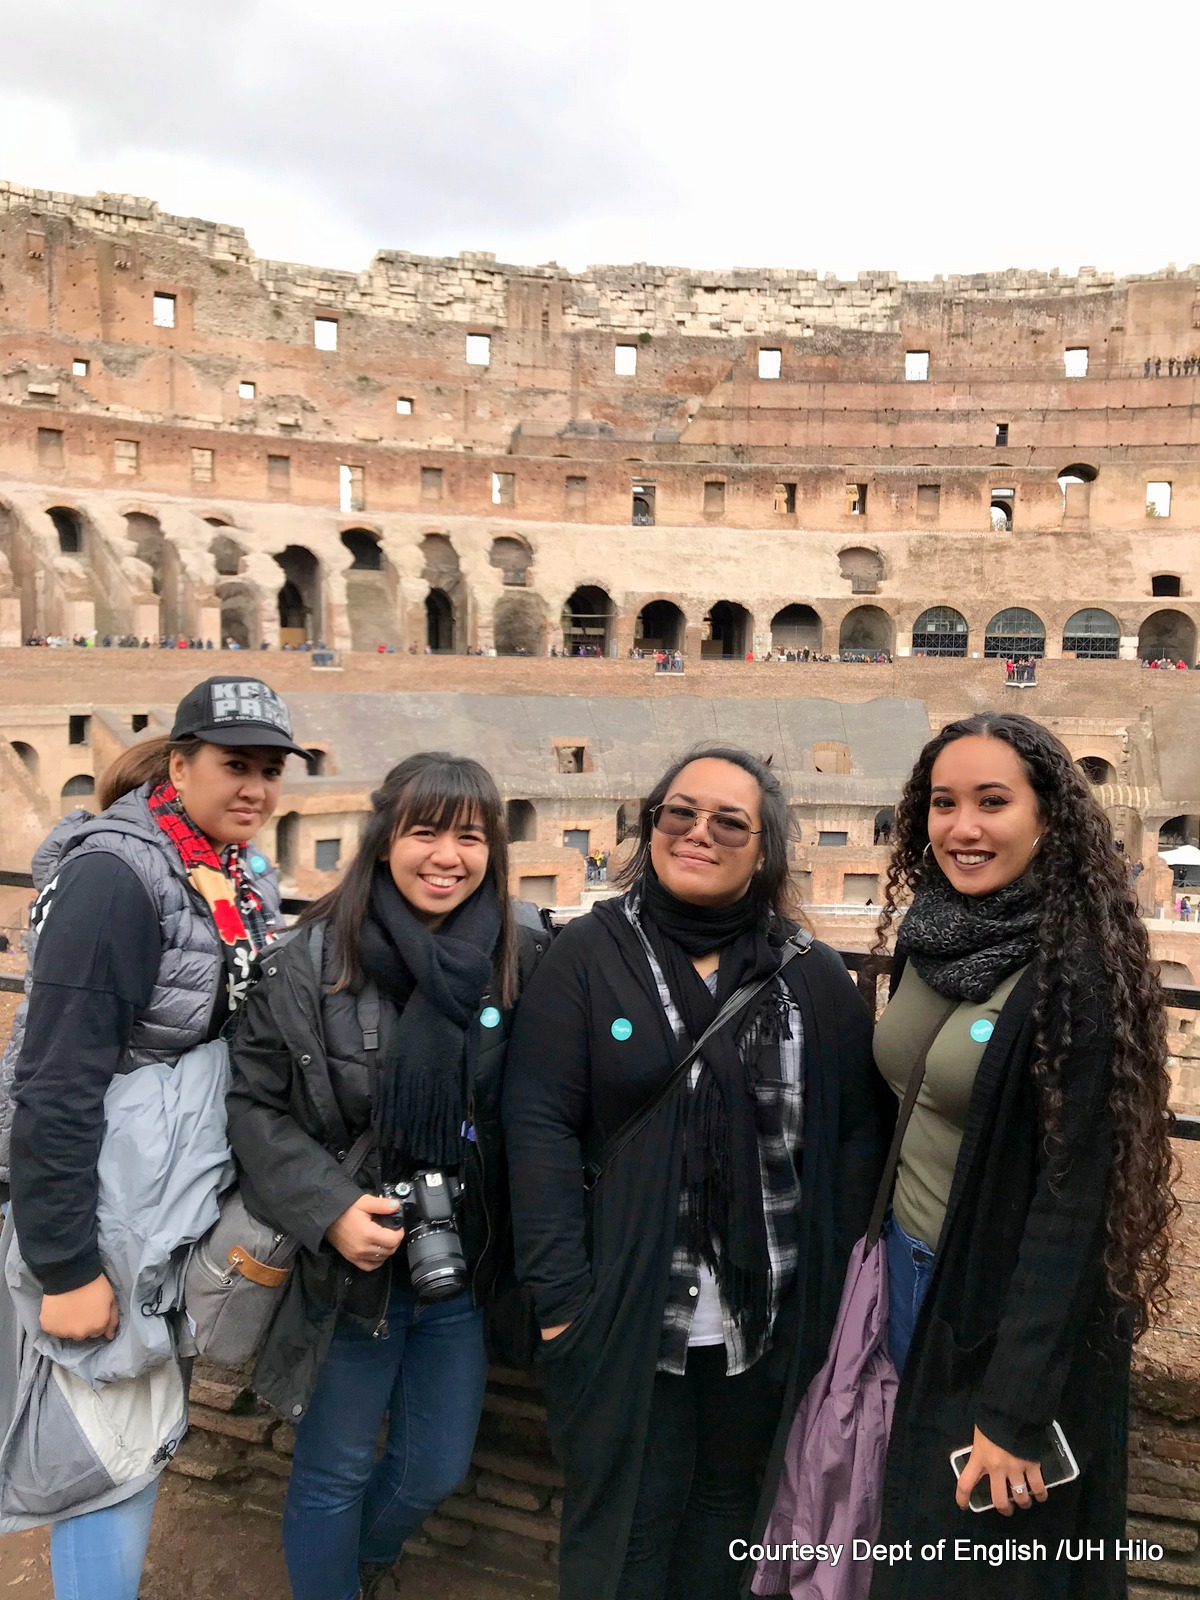 Leomanaolamaikalani, Tynsl, Ciarra-Lynn, and U'ilani at the Colosseum, Rome.